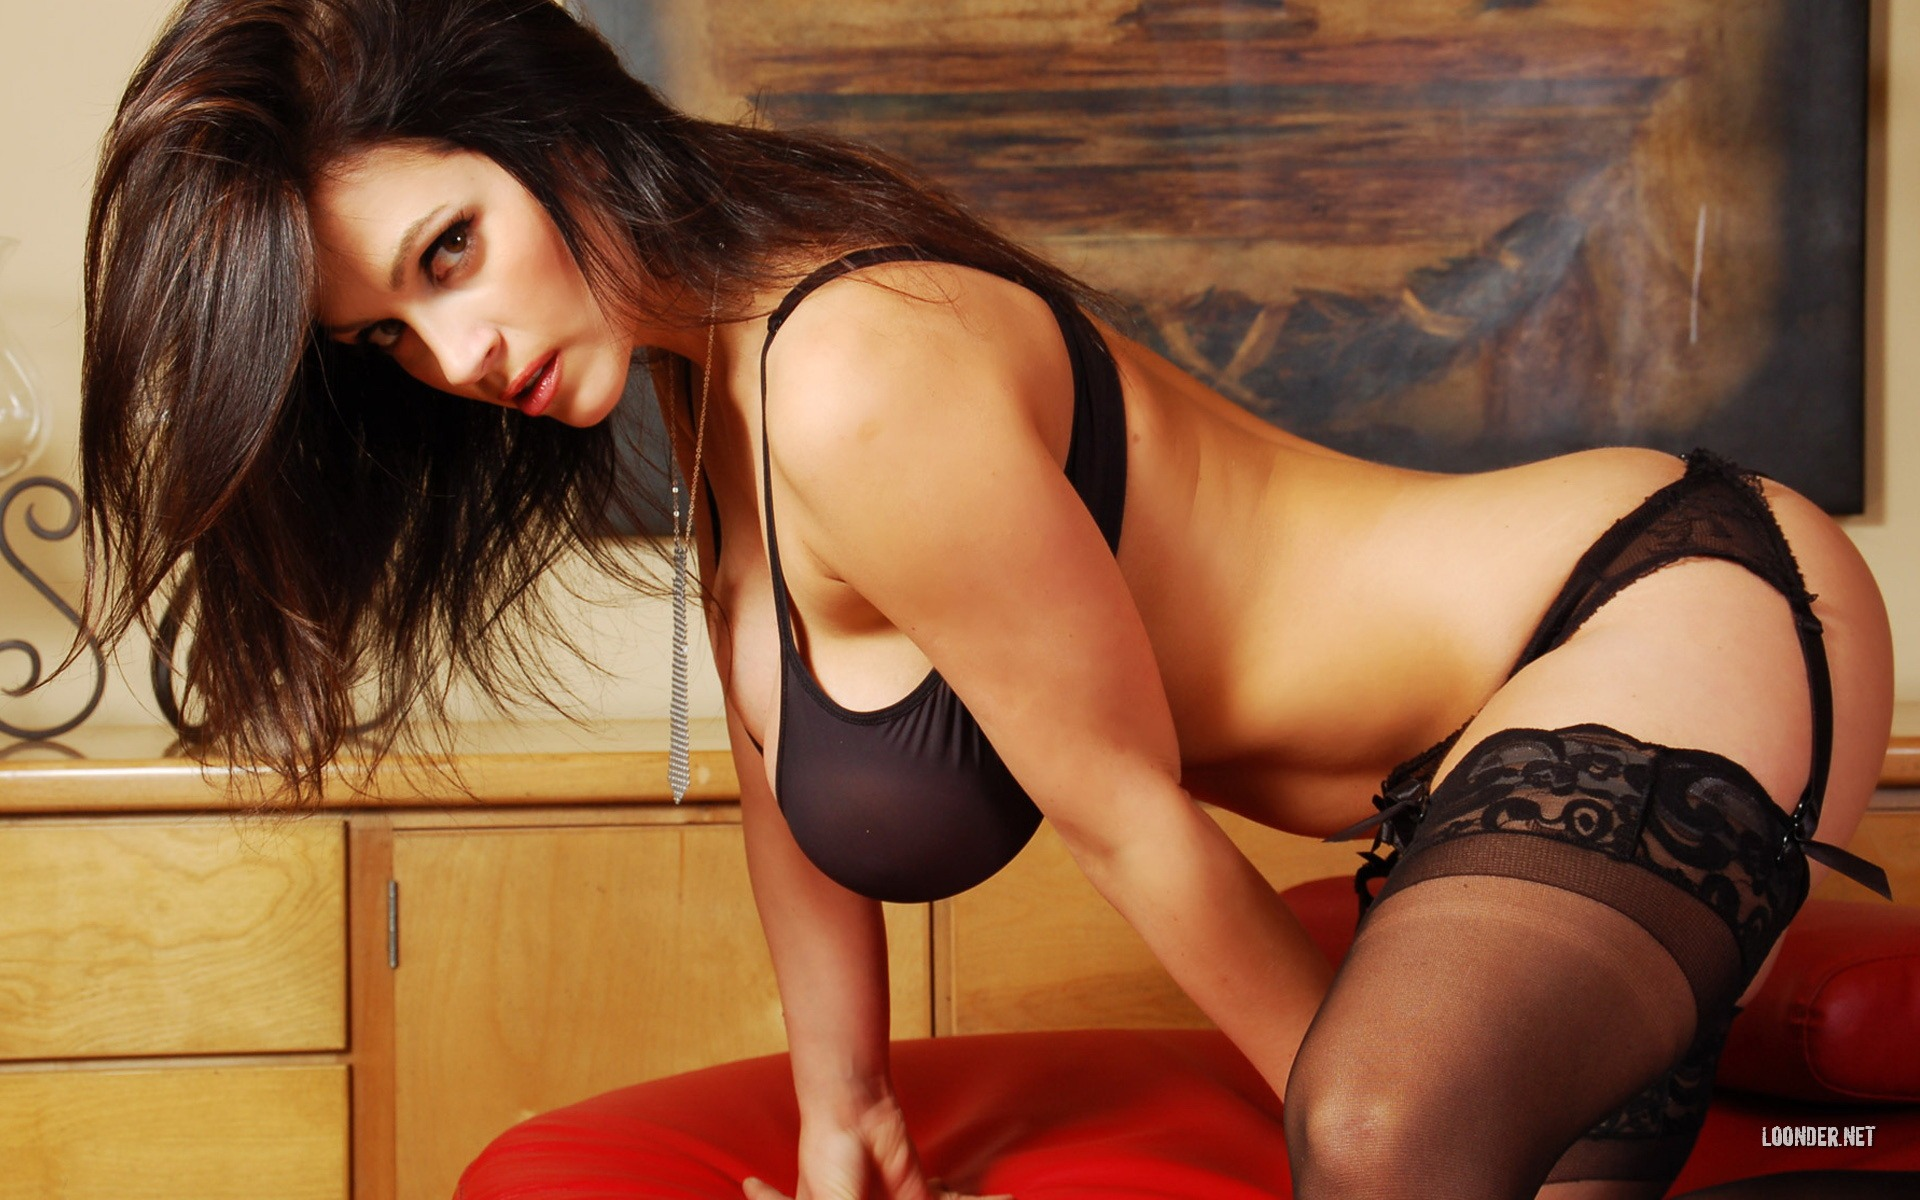 denise milani 038 1920x1200 wallpaper download